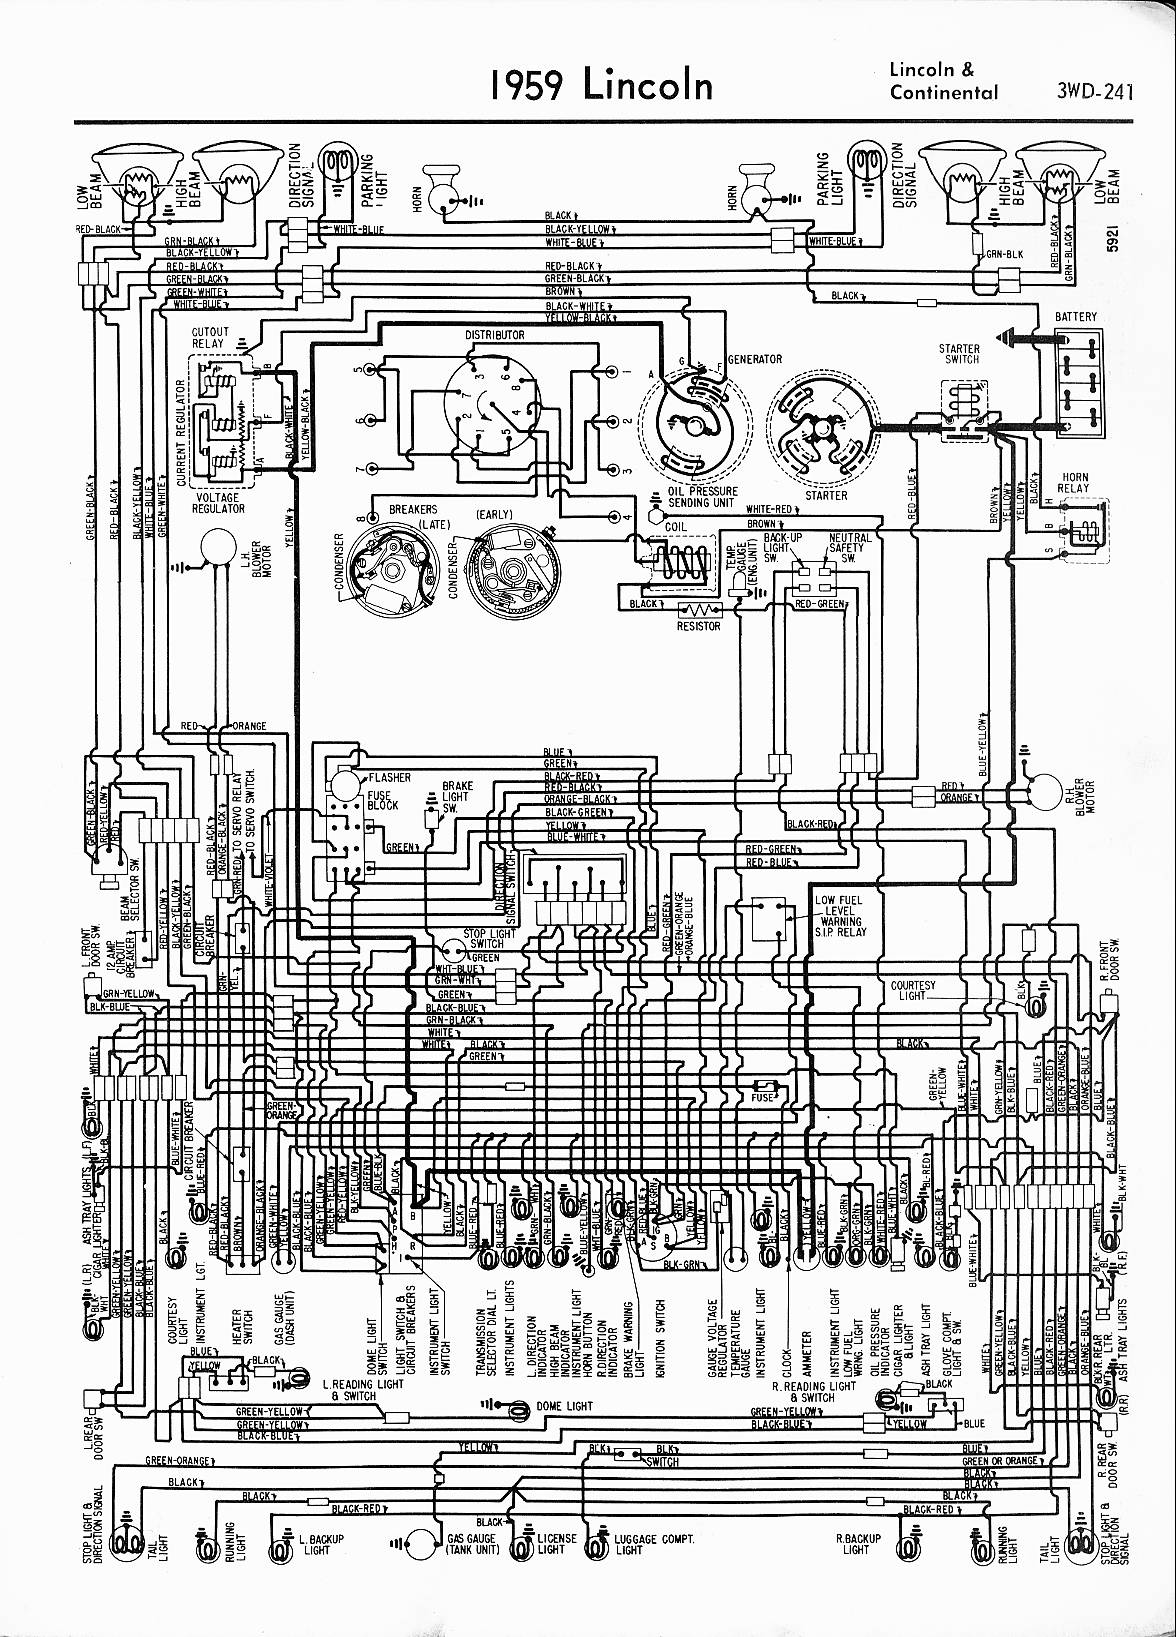 MWireLin_Lin57_z3wd 241z_004 lincoln wiring diagrams 1957 1965 2001 lincoln continental radio wiring diagram at aneh.co